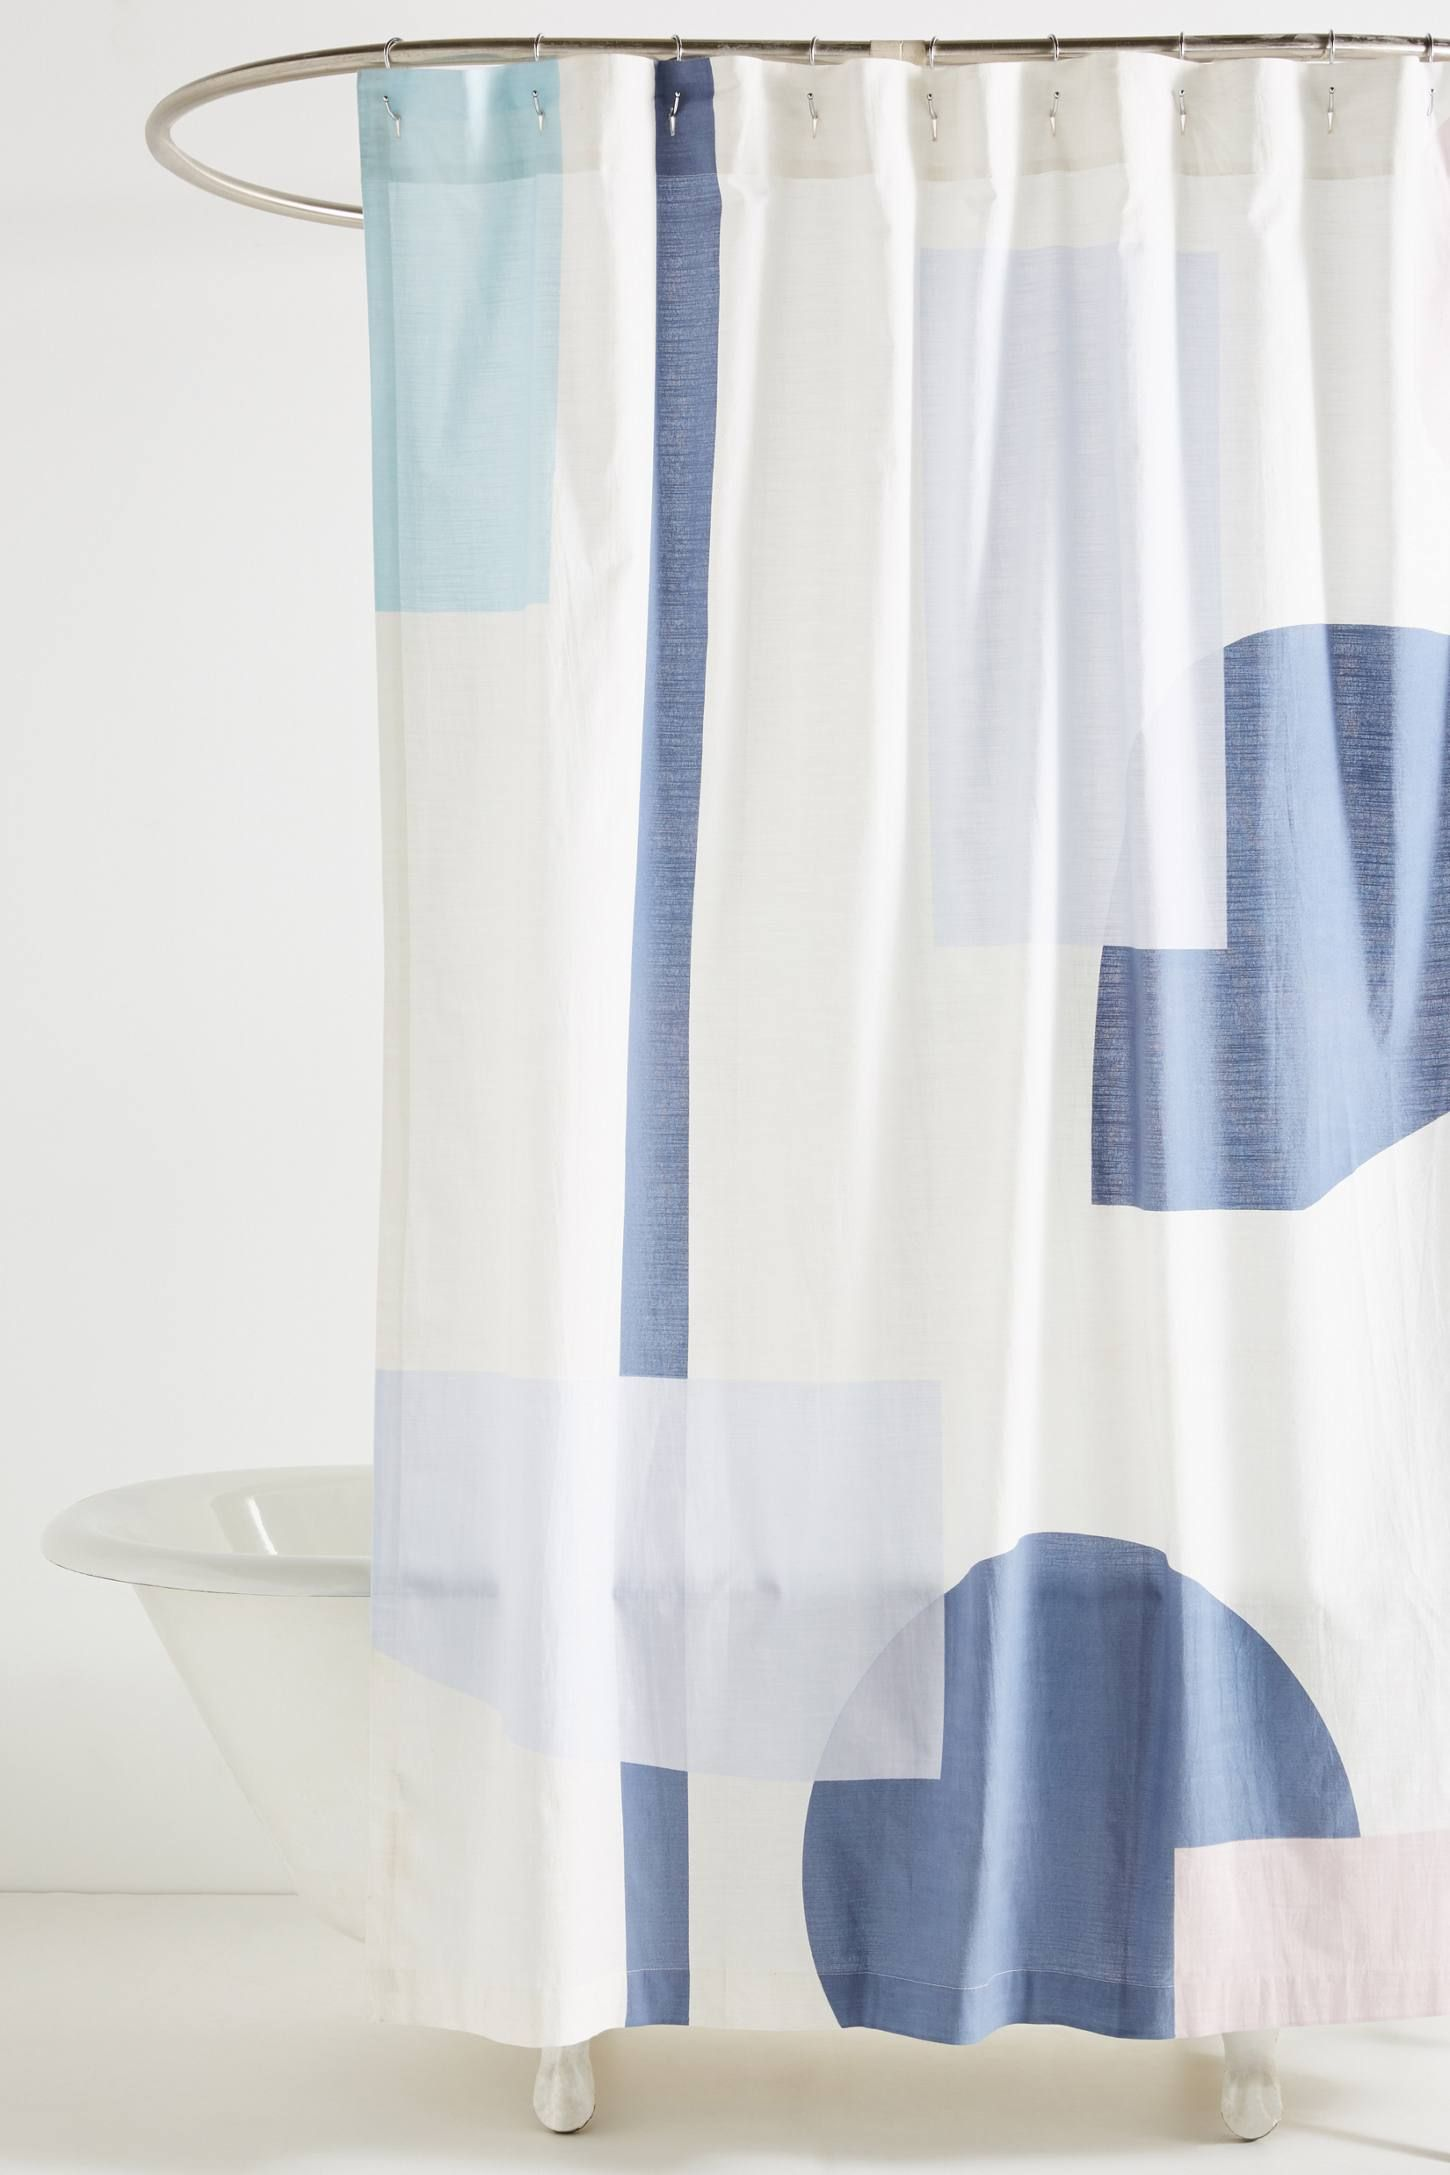 Carla Weeks Shapeshift Shower Curtain Cool Shower Curtains